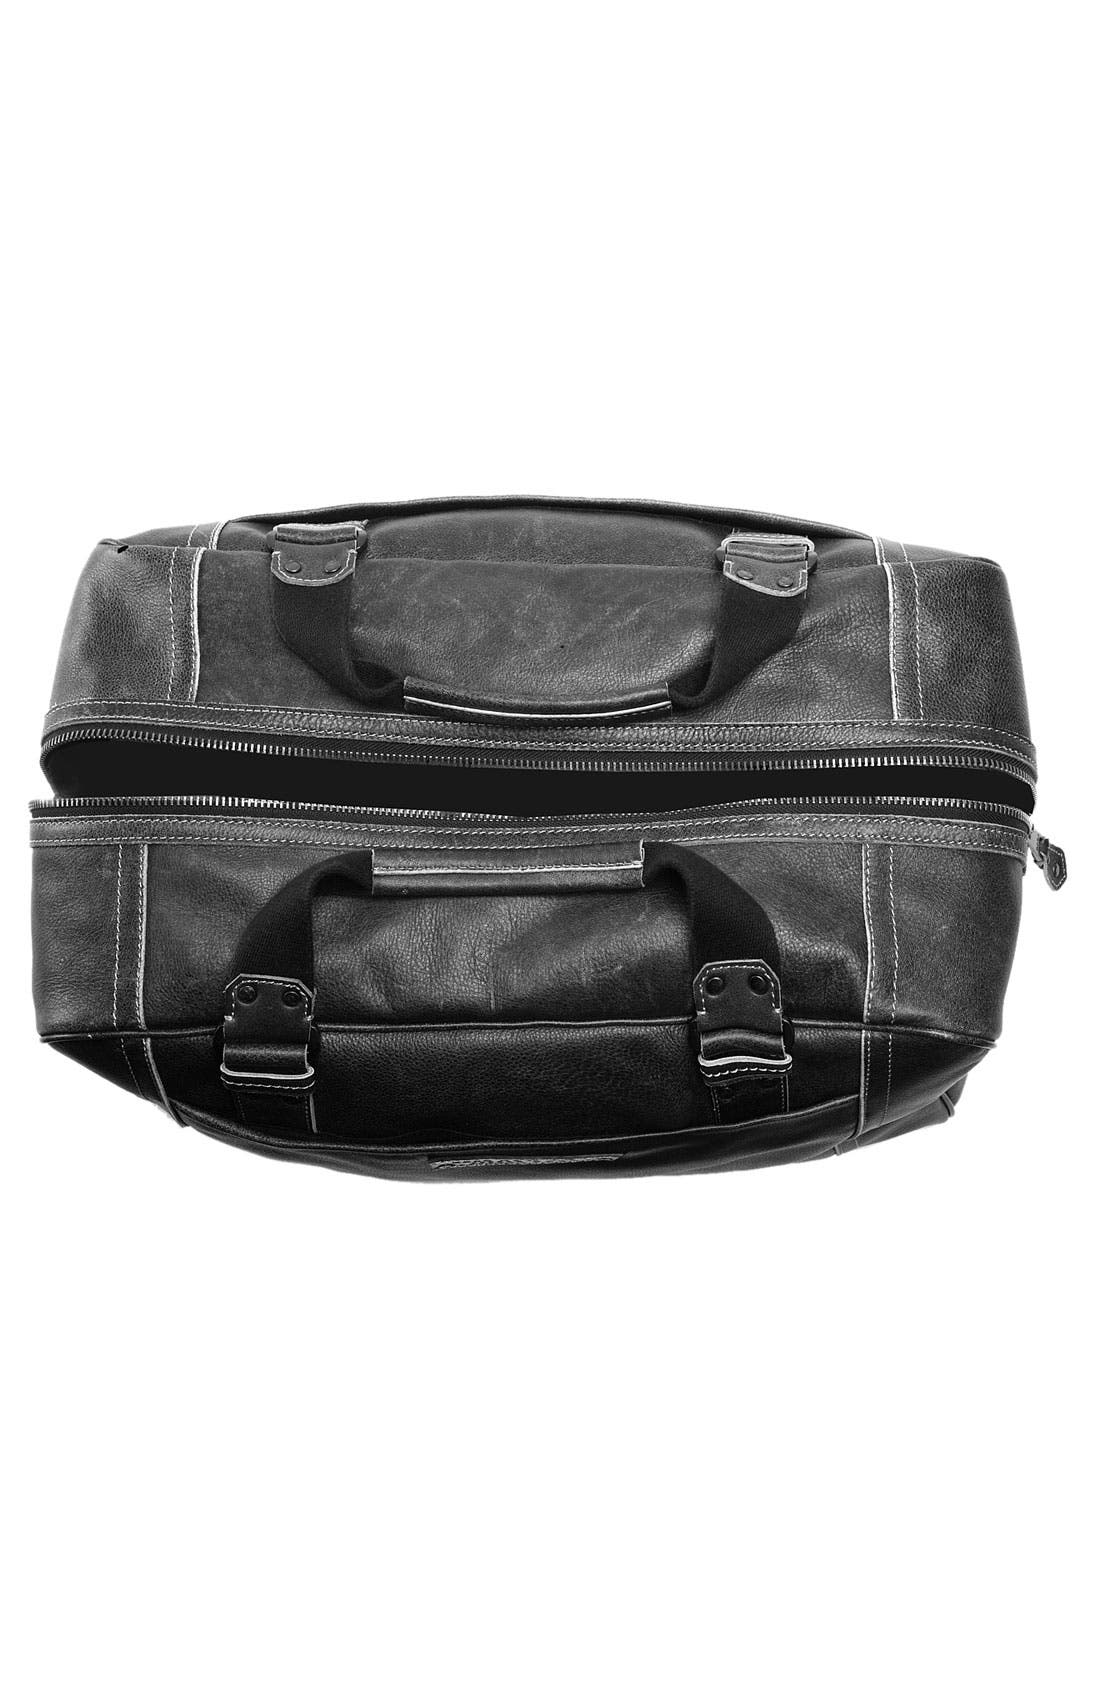 MARC NEW YORK, by Andrew Marc Vintage Leather Weekend Duffel Bag, Alternate thumbnail 2, color, 001